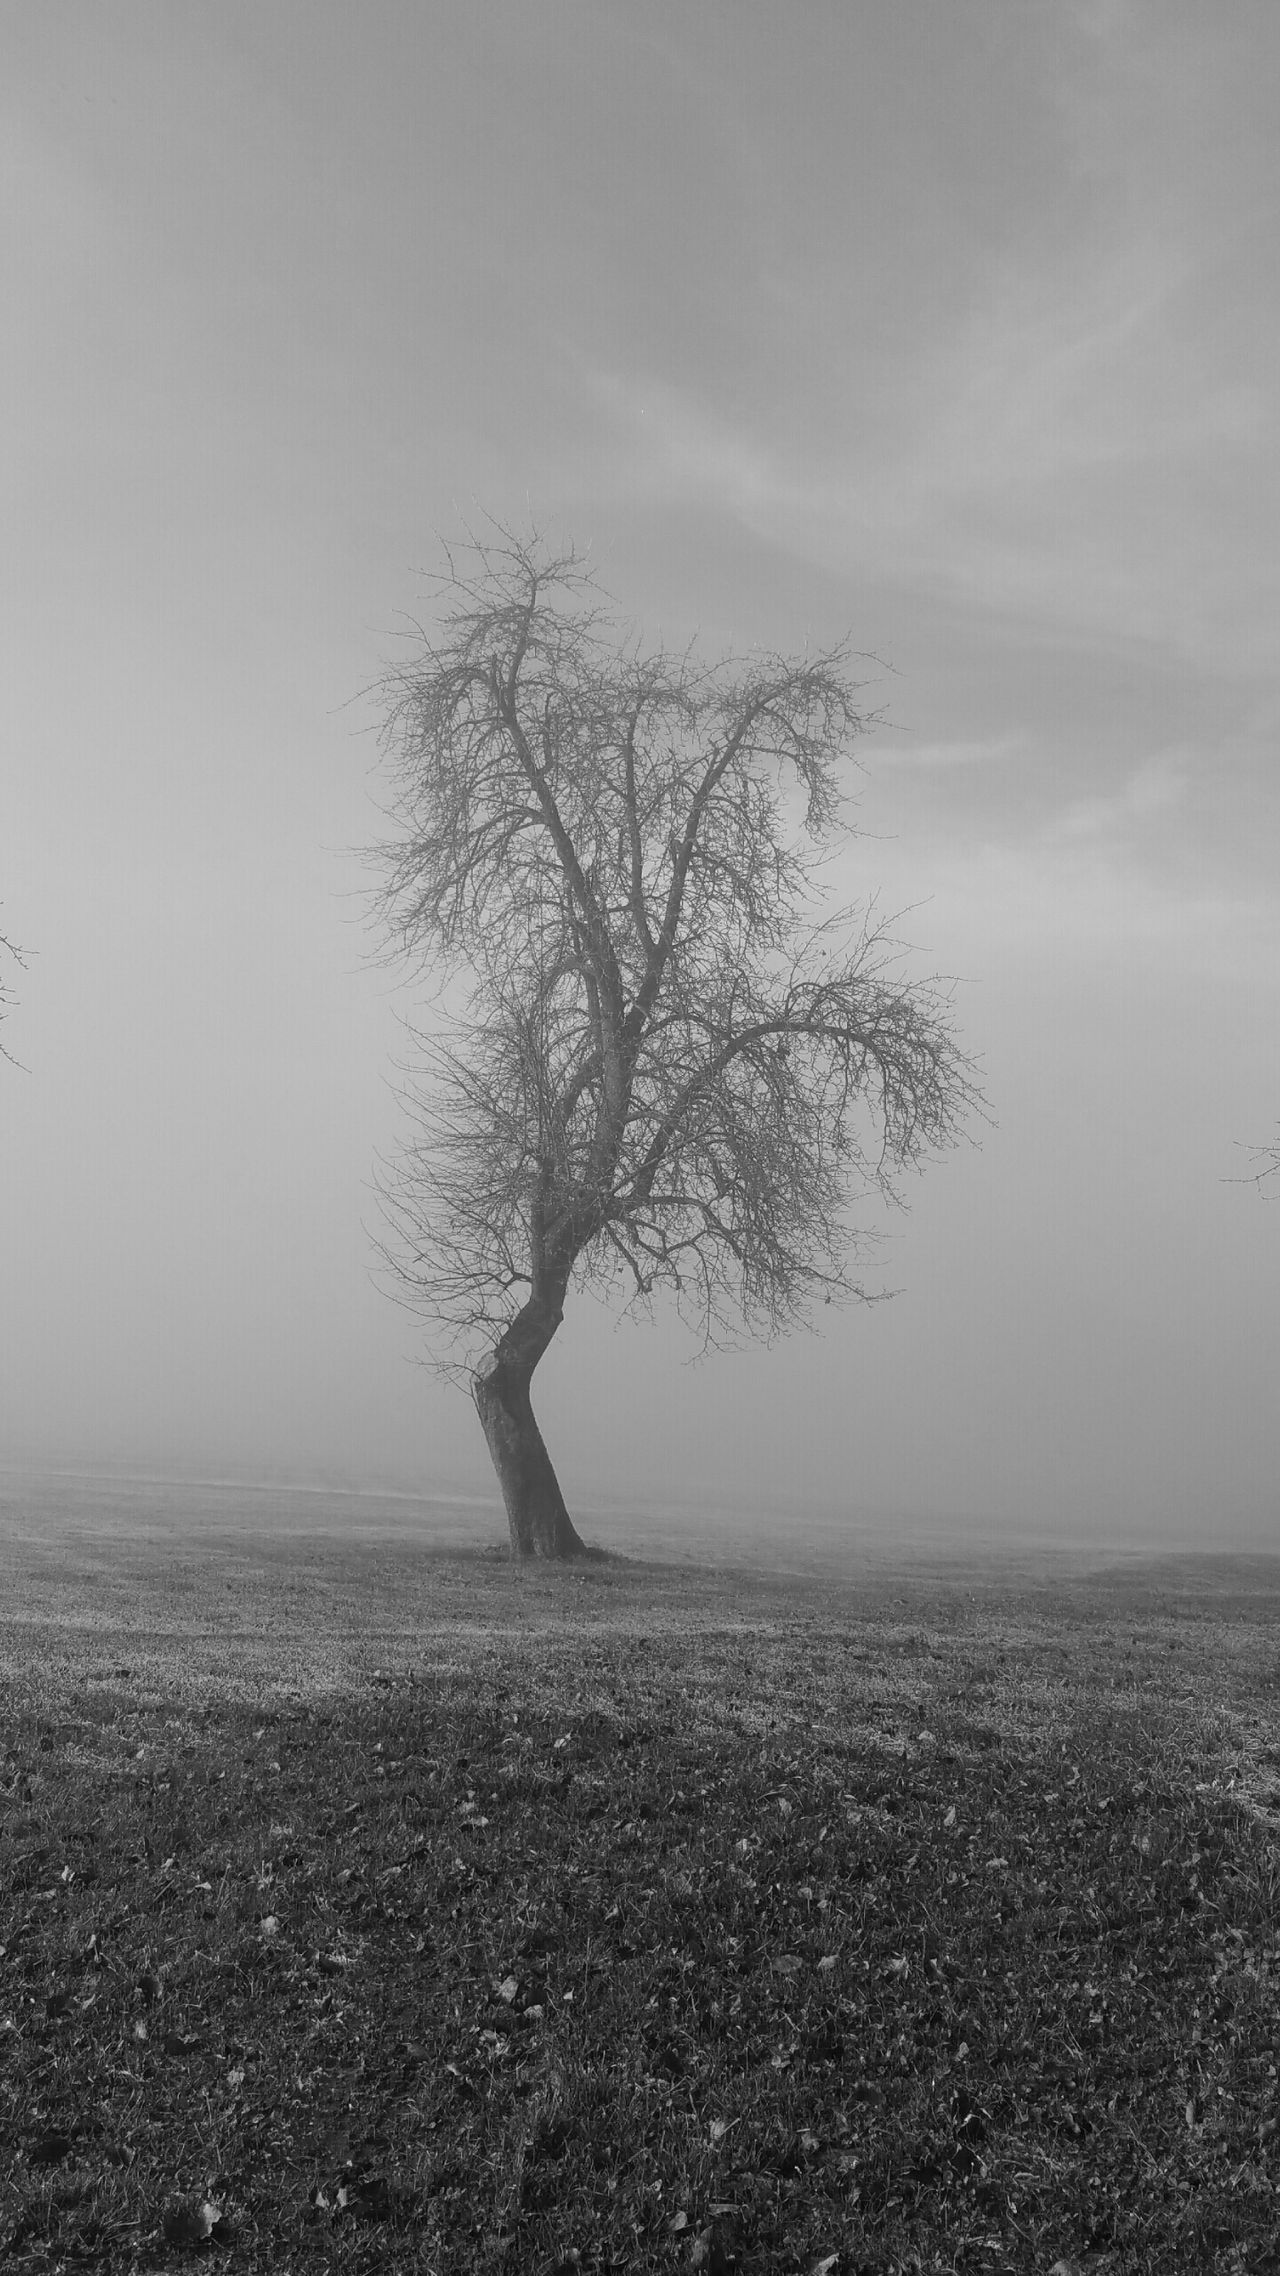 Gray Background Tree Foggy Fog Foggy Day Tree In The Fog Tree Silhouette Unperfect Sadness... Lonely Loneliness Lost Lost In The Fog Black And White Colorless Perfekt Unperfekt Premium Collection Kanton Thurgau Art Is Everywhere